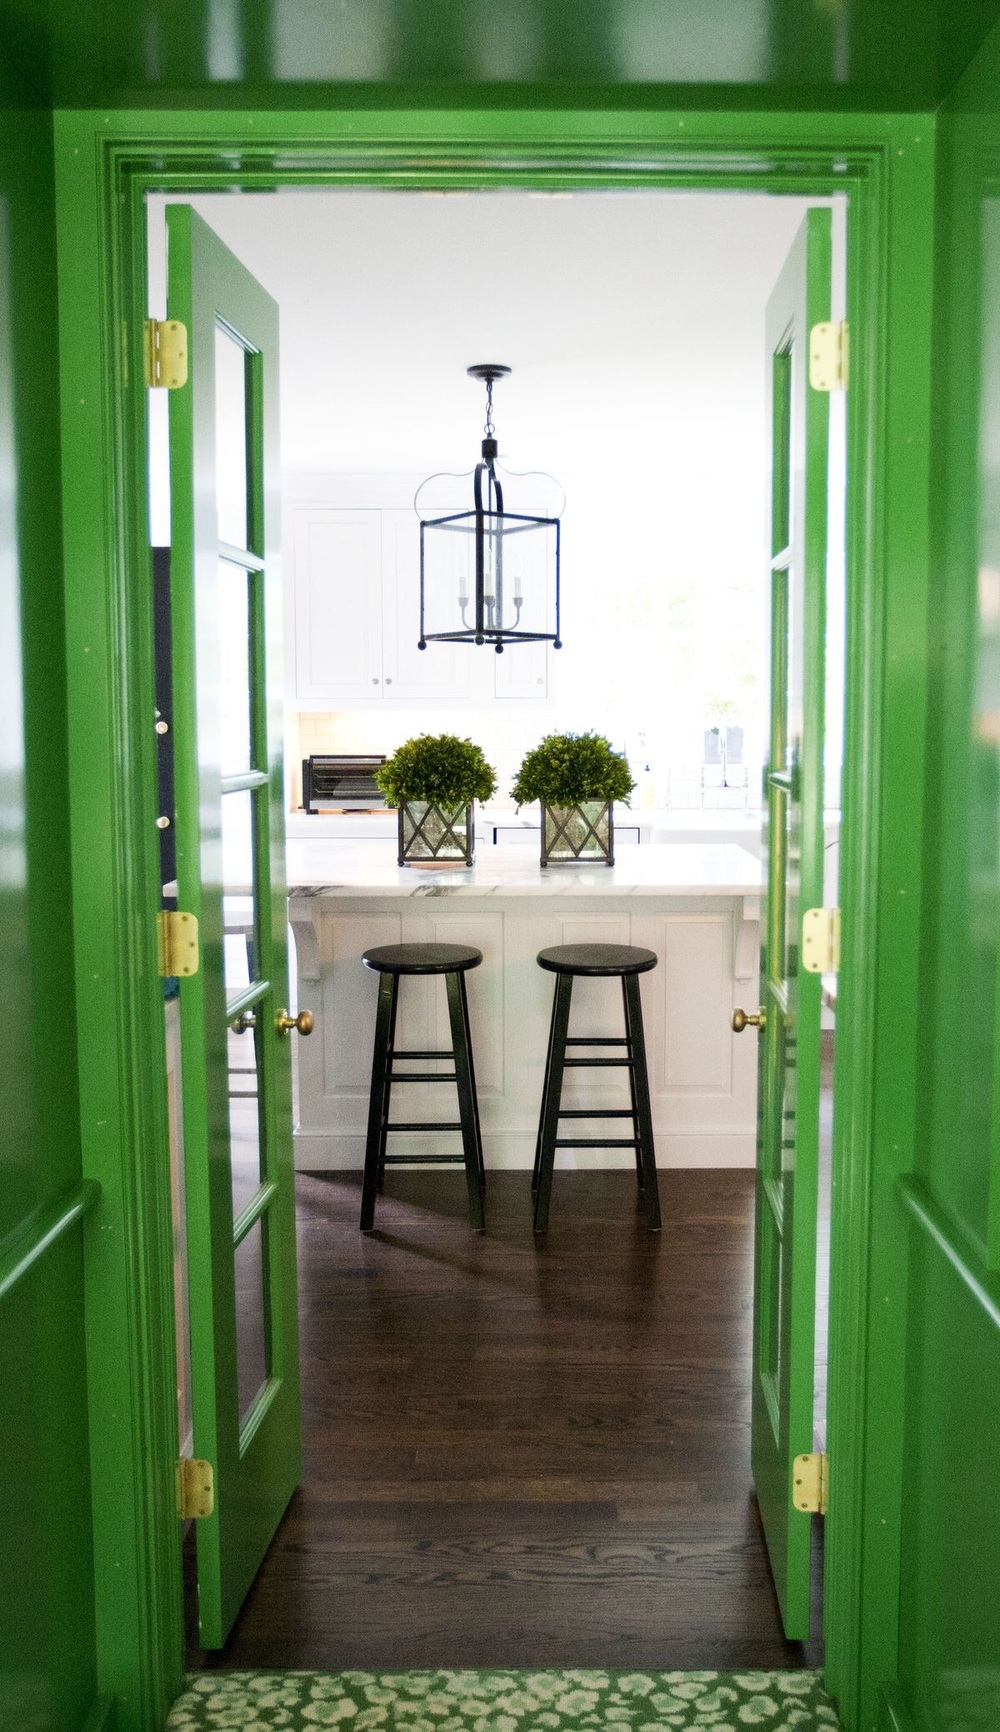 http://summerfielddesign.wordpress.com/page/3/ Green and gloss!  I'm in love!